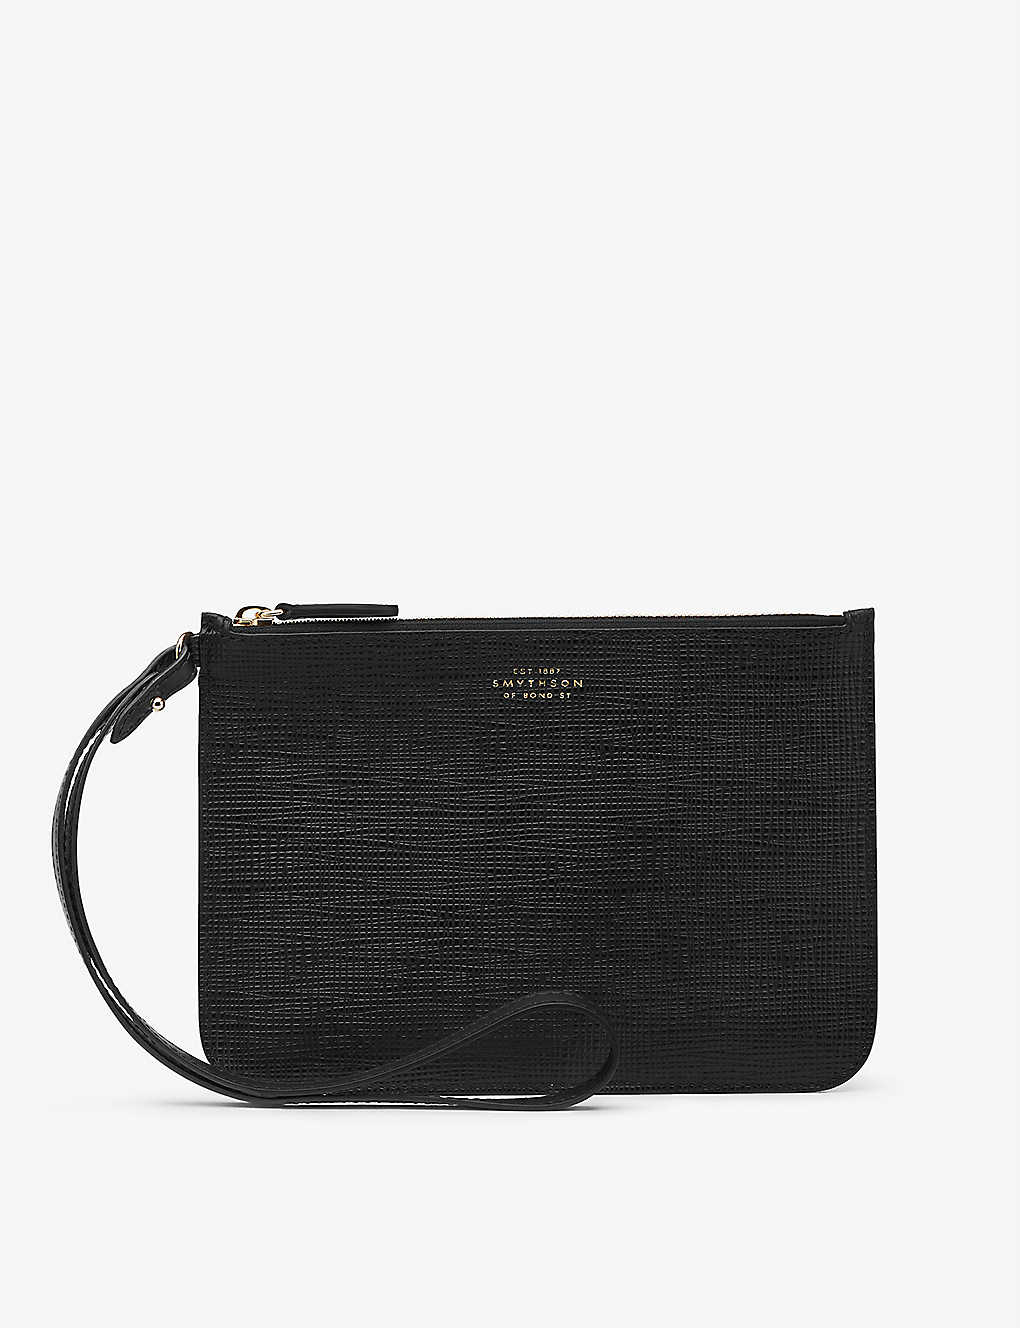 SMYTHSON: Panama pouch with loop strap in crossgrain leather